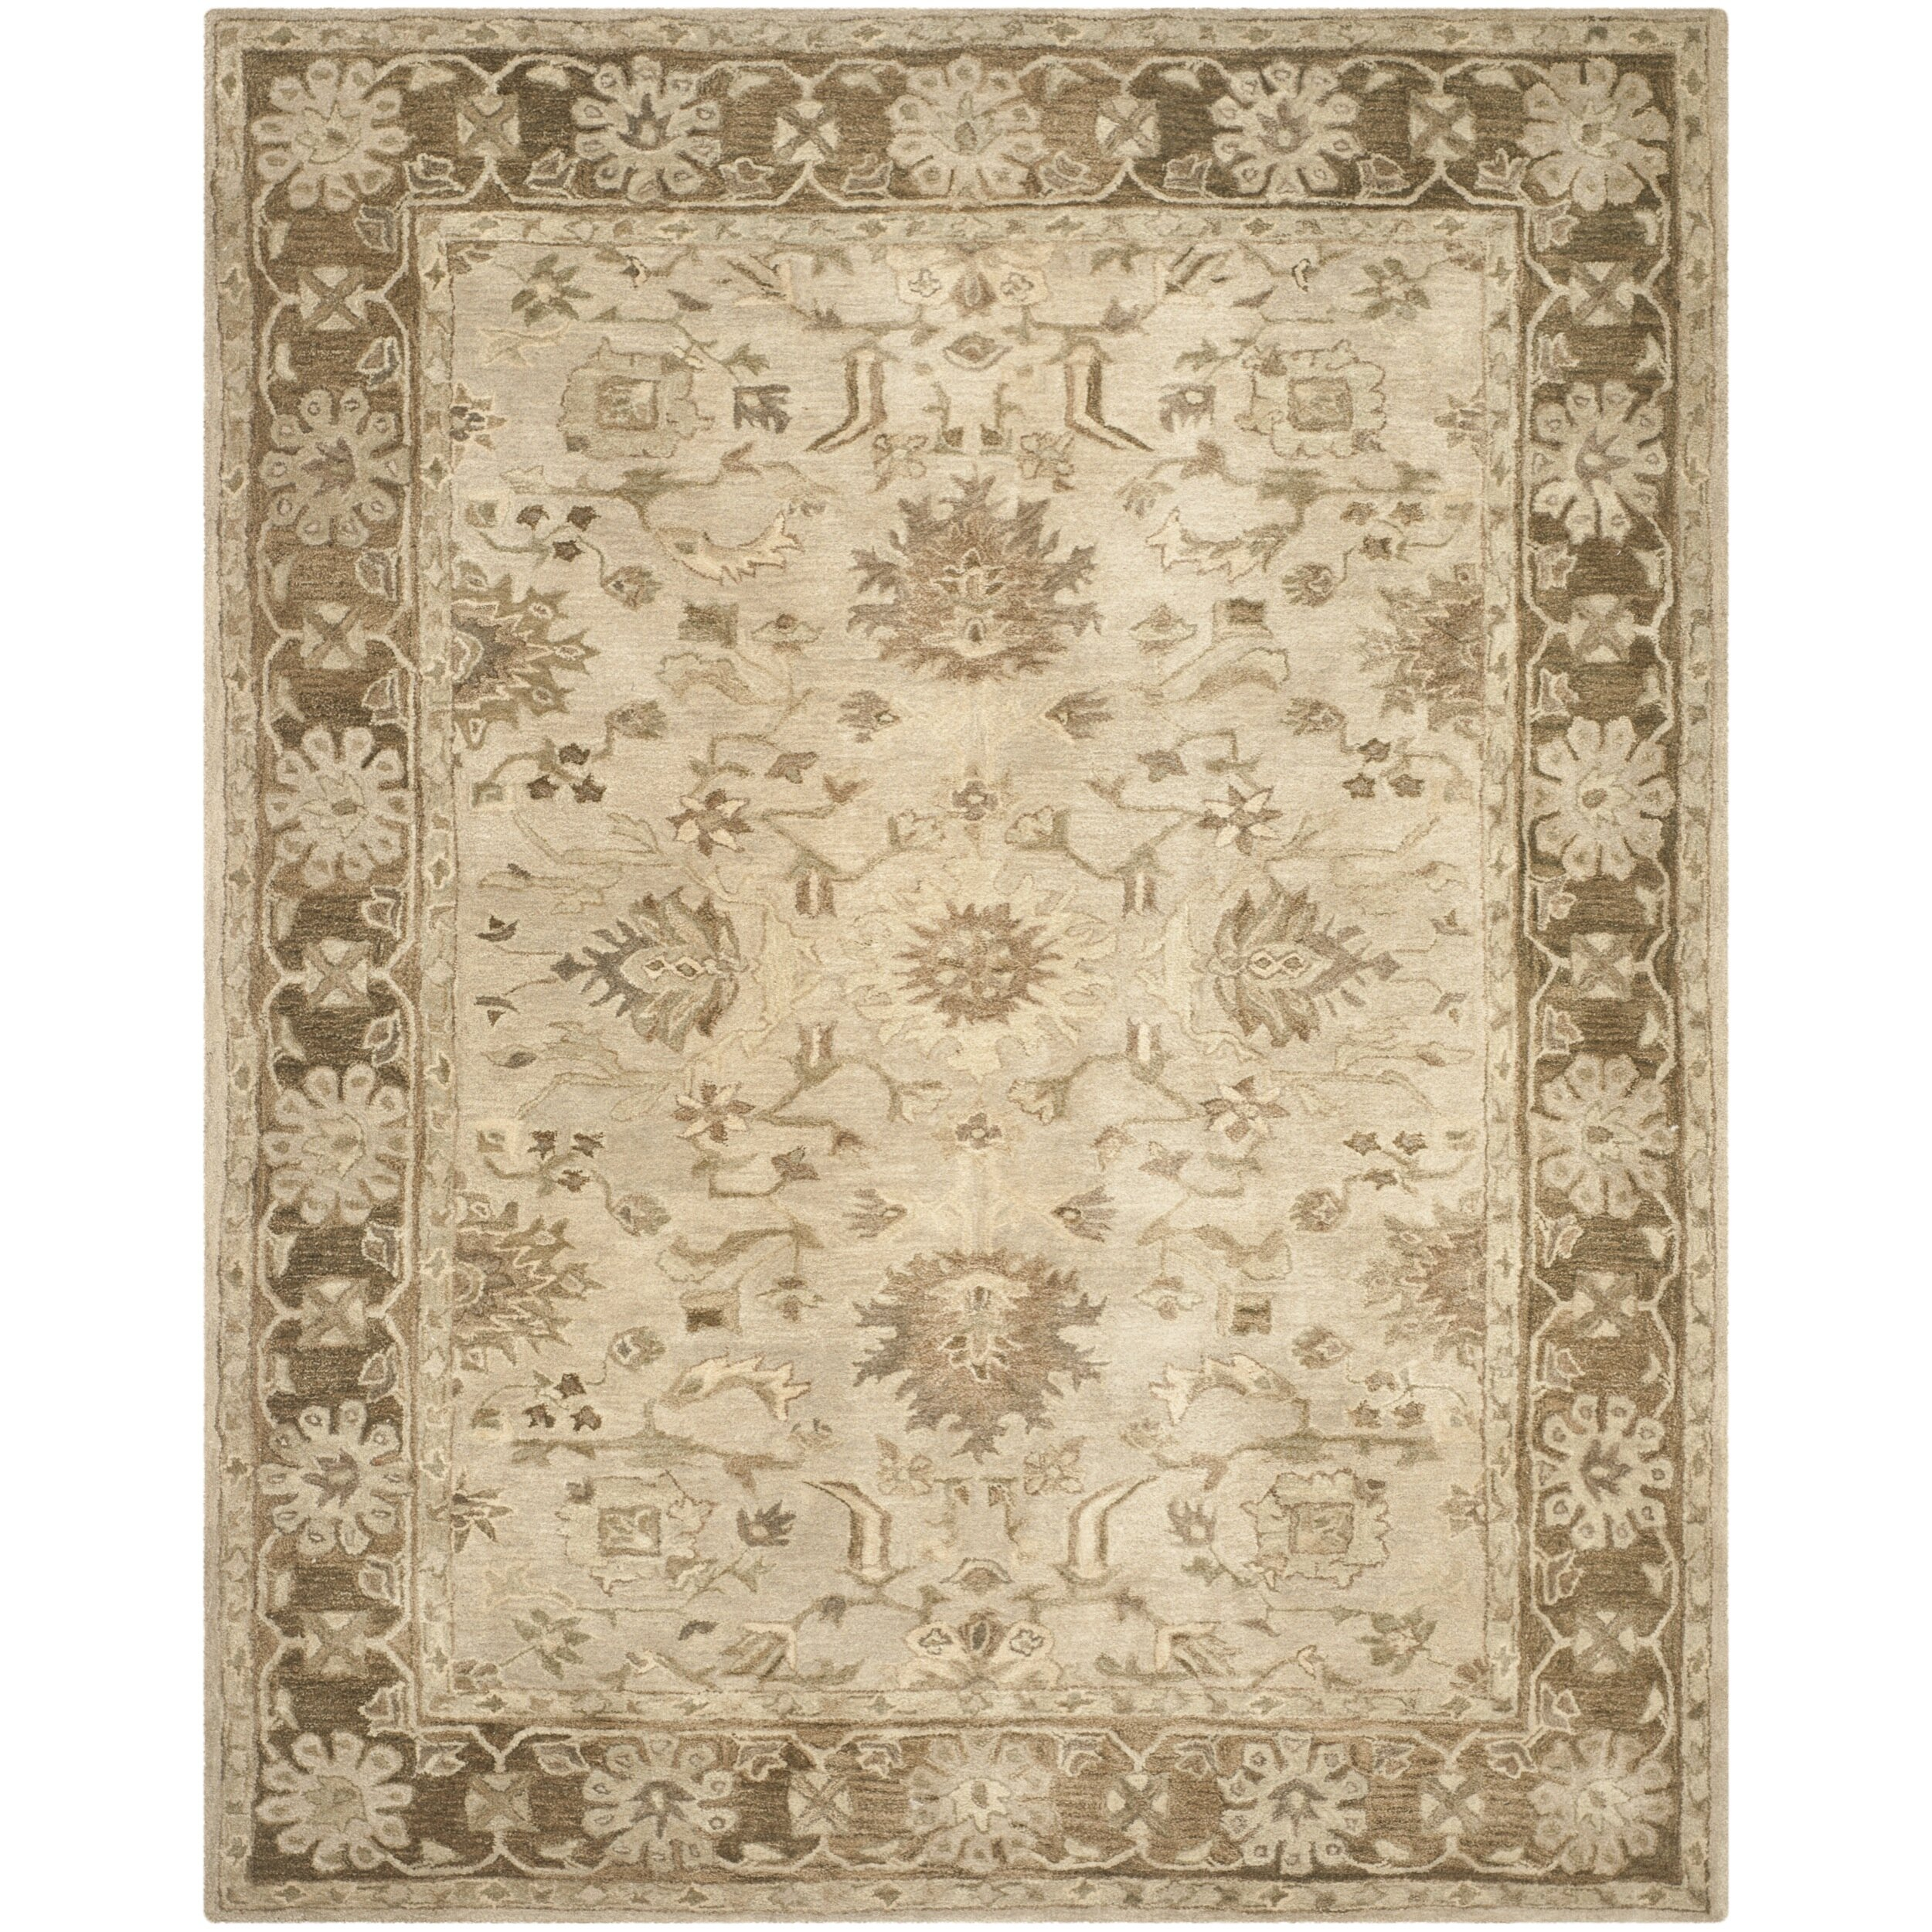 Safavieh Carpet: Safavieh Anatolia Brown Area Rug